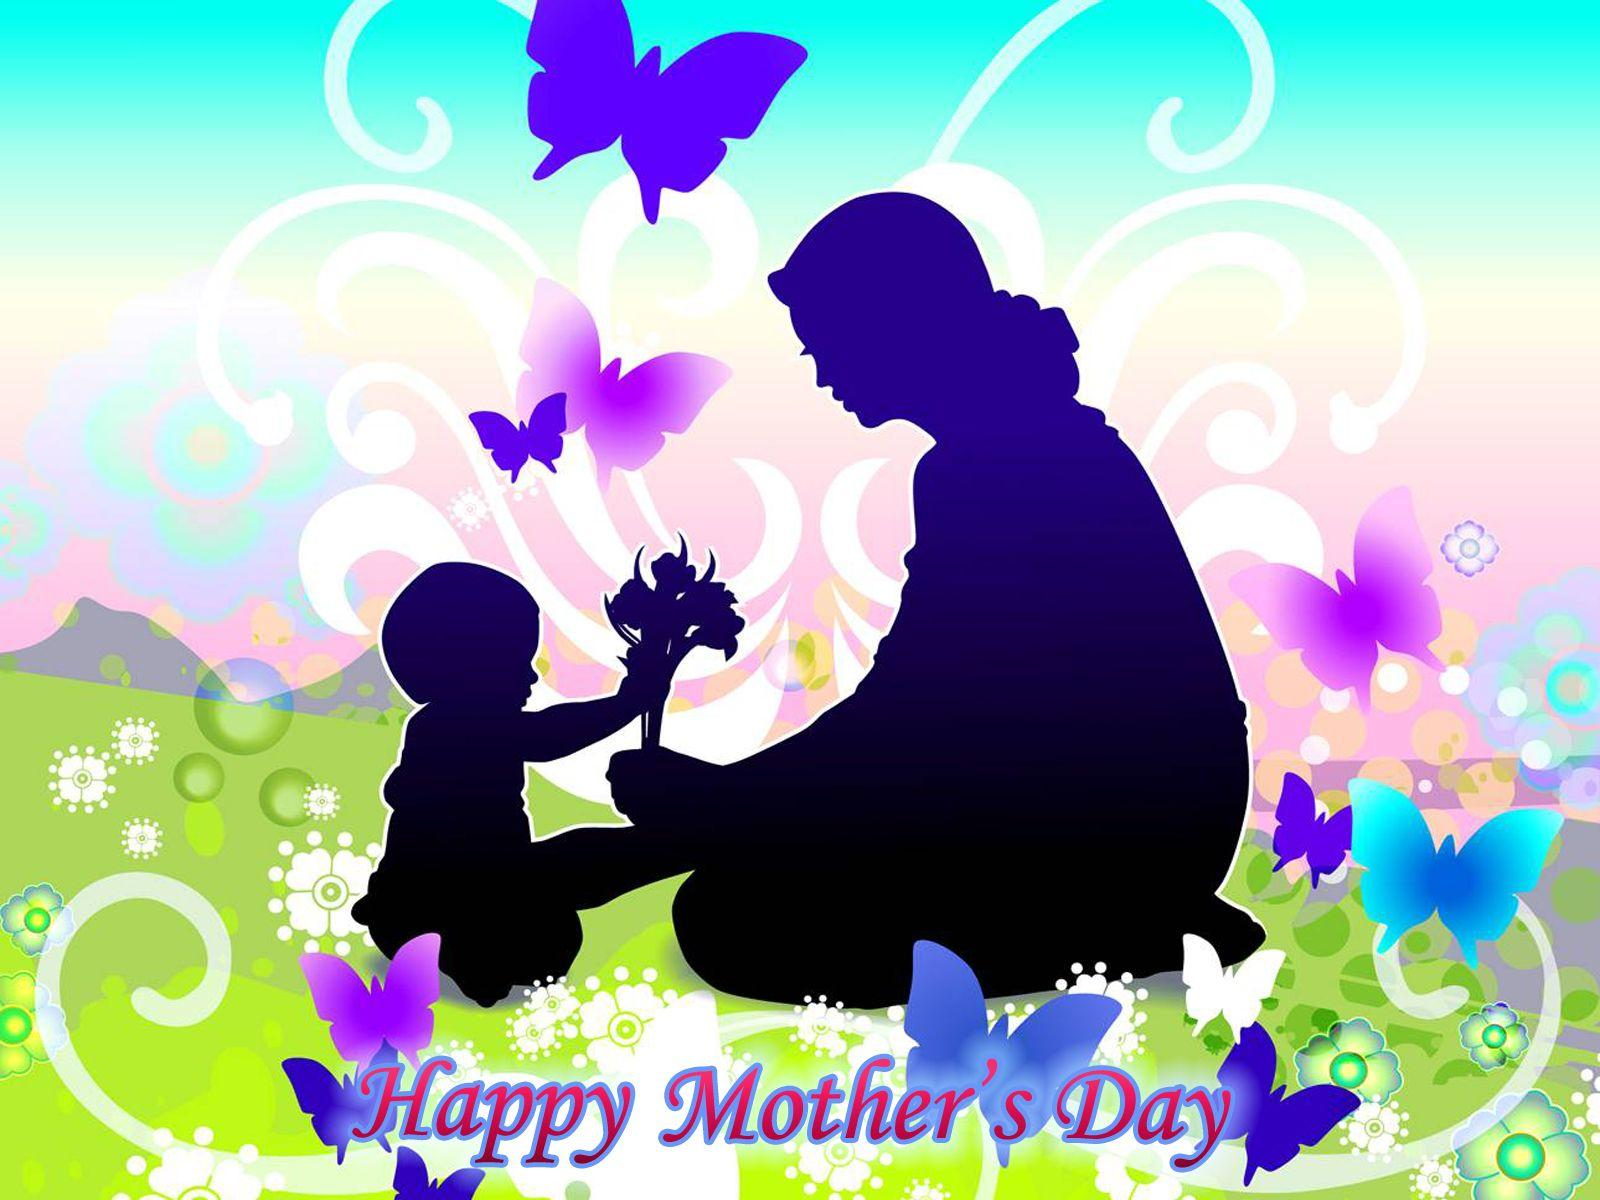 Happy Mother's Day to you, beautiful single mom | Happy mothers ...